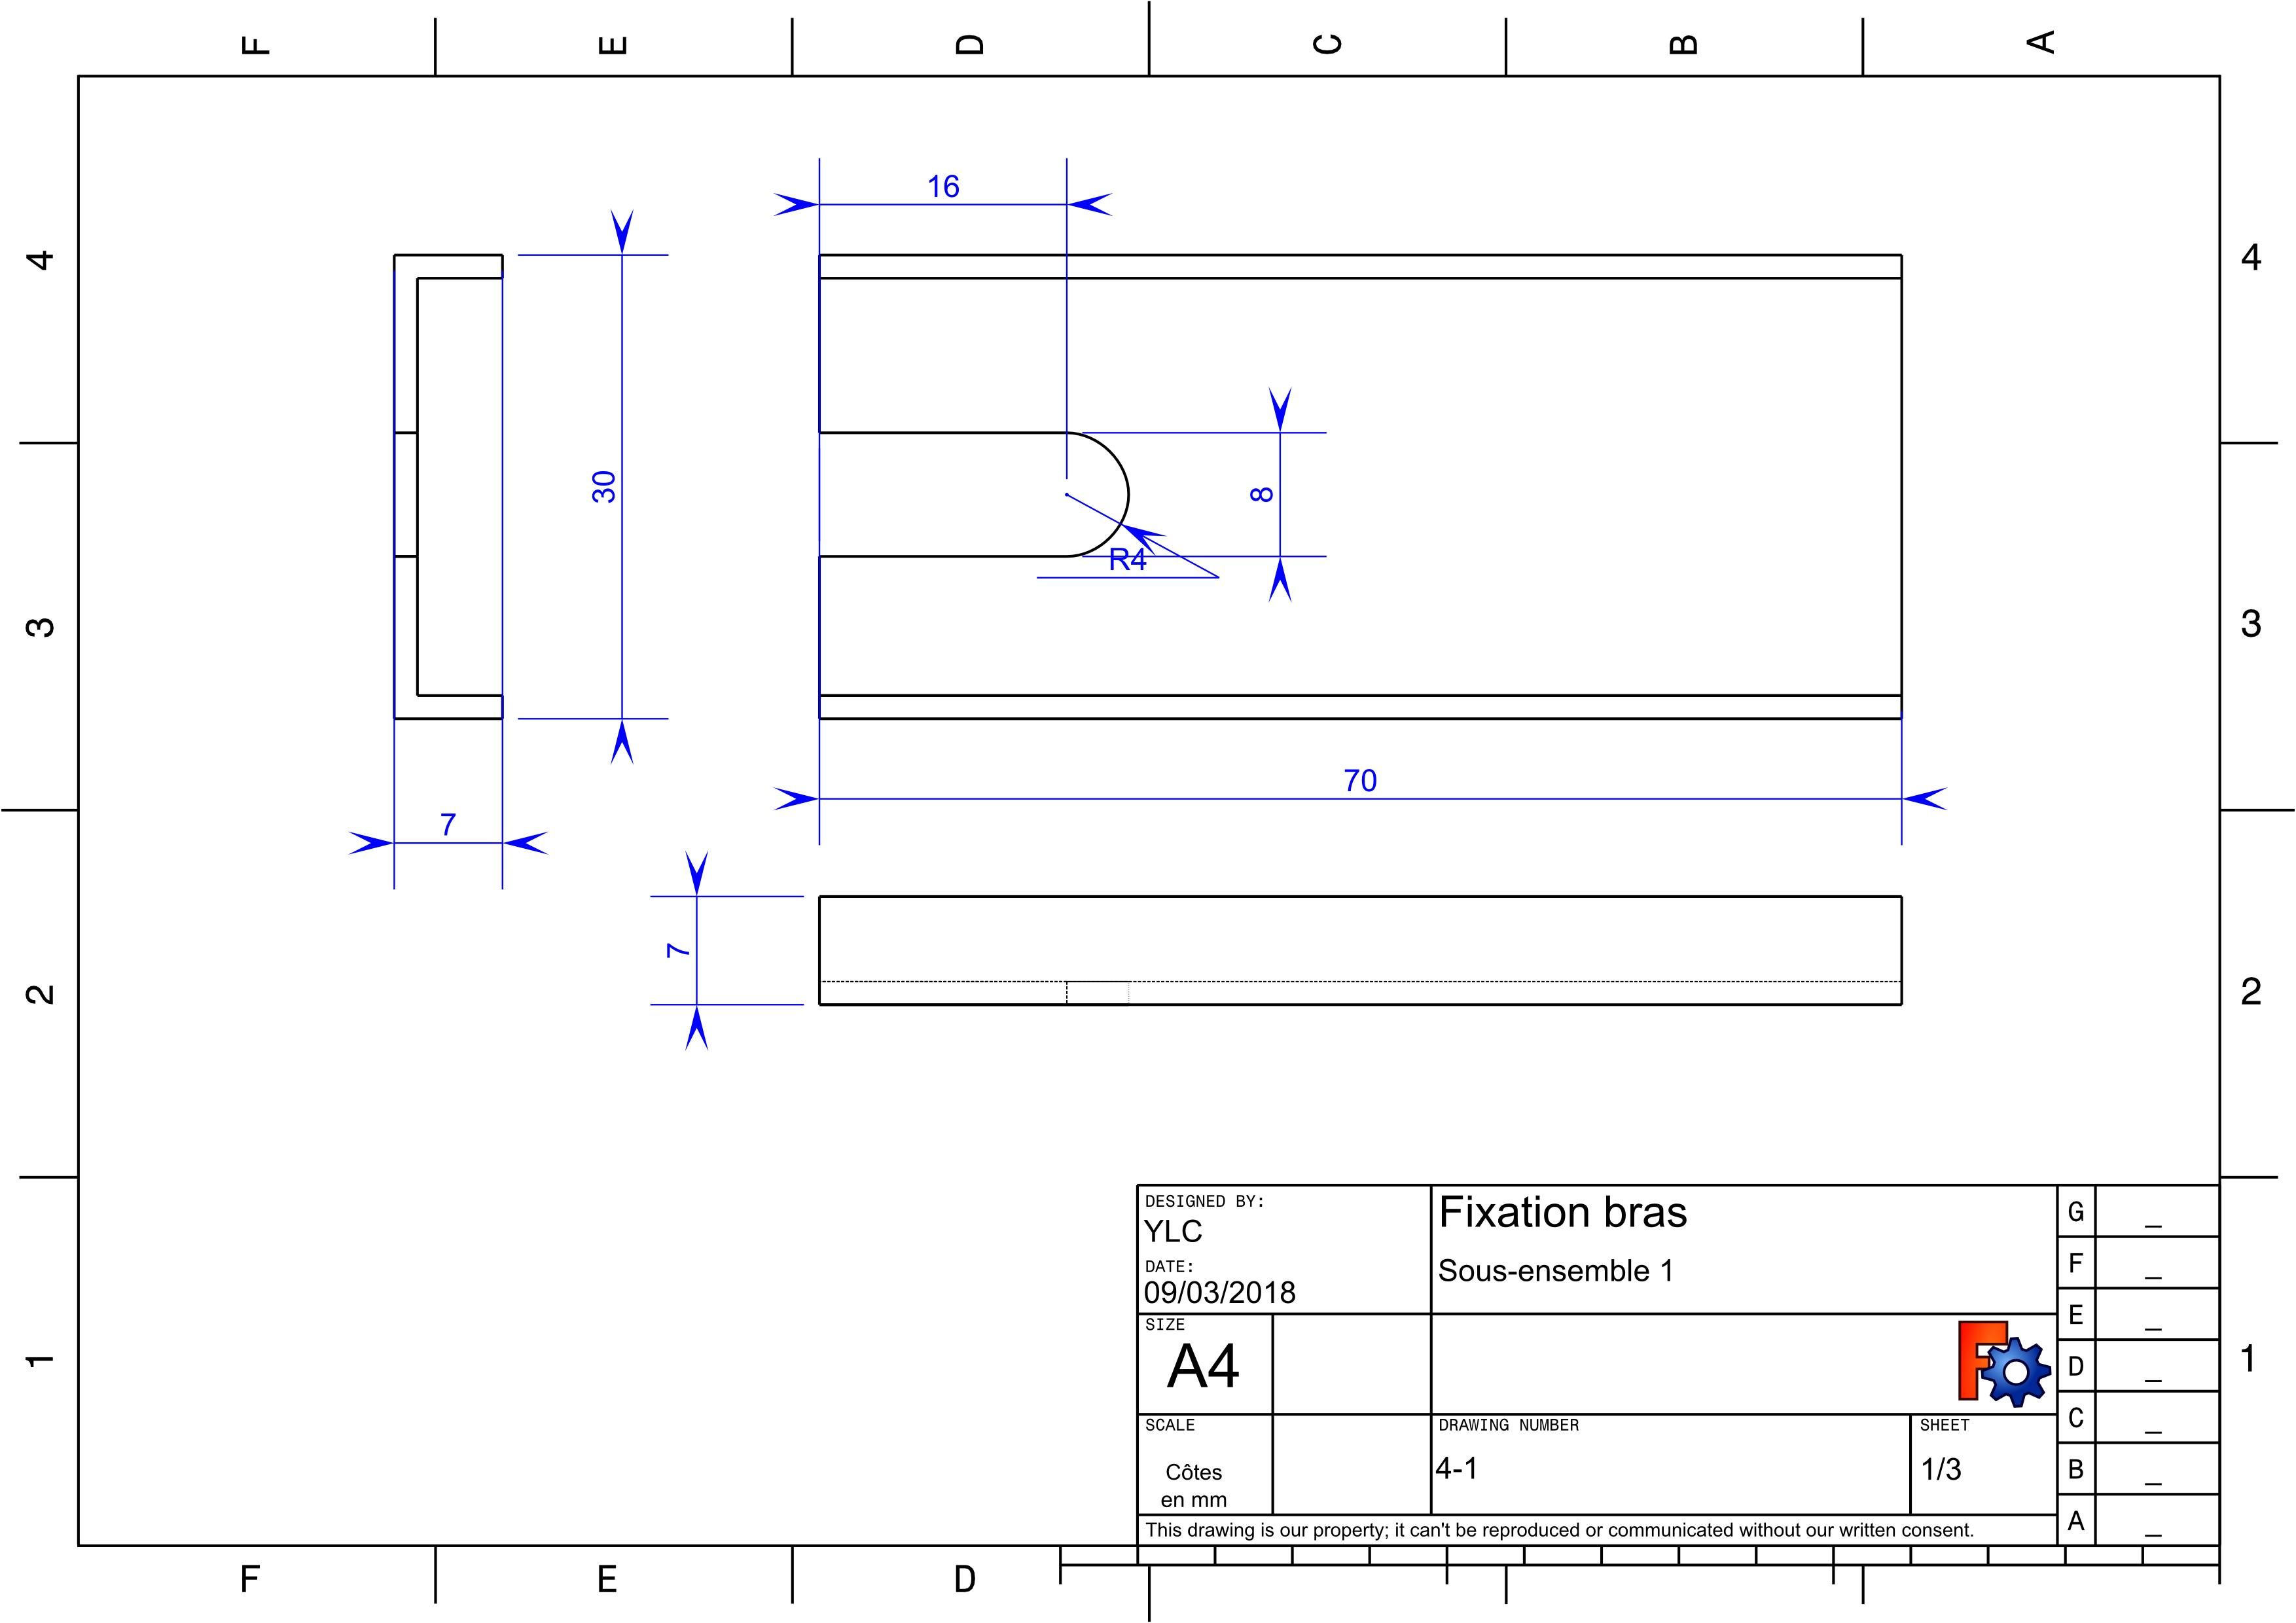 Annexe4 : plan pieces metal : Element1 de la fixation du bras.jpg